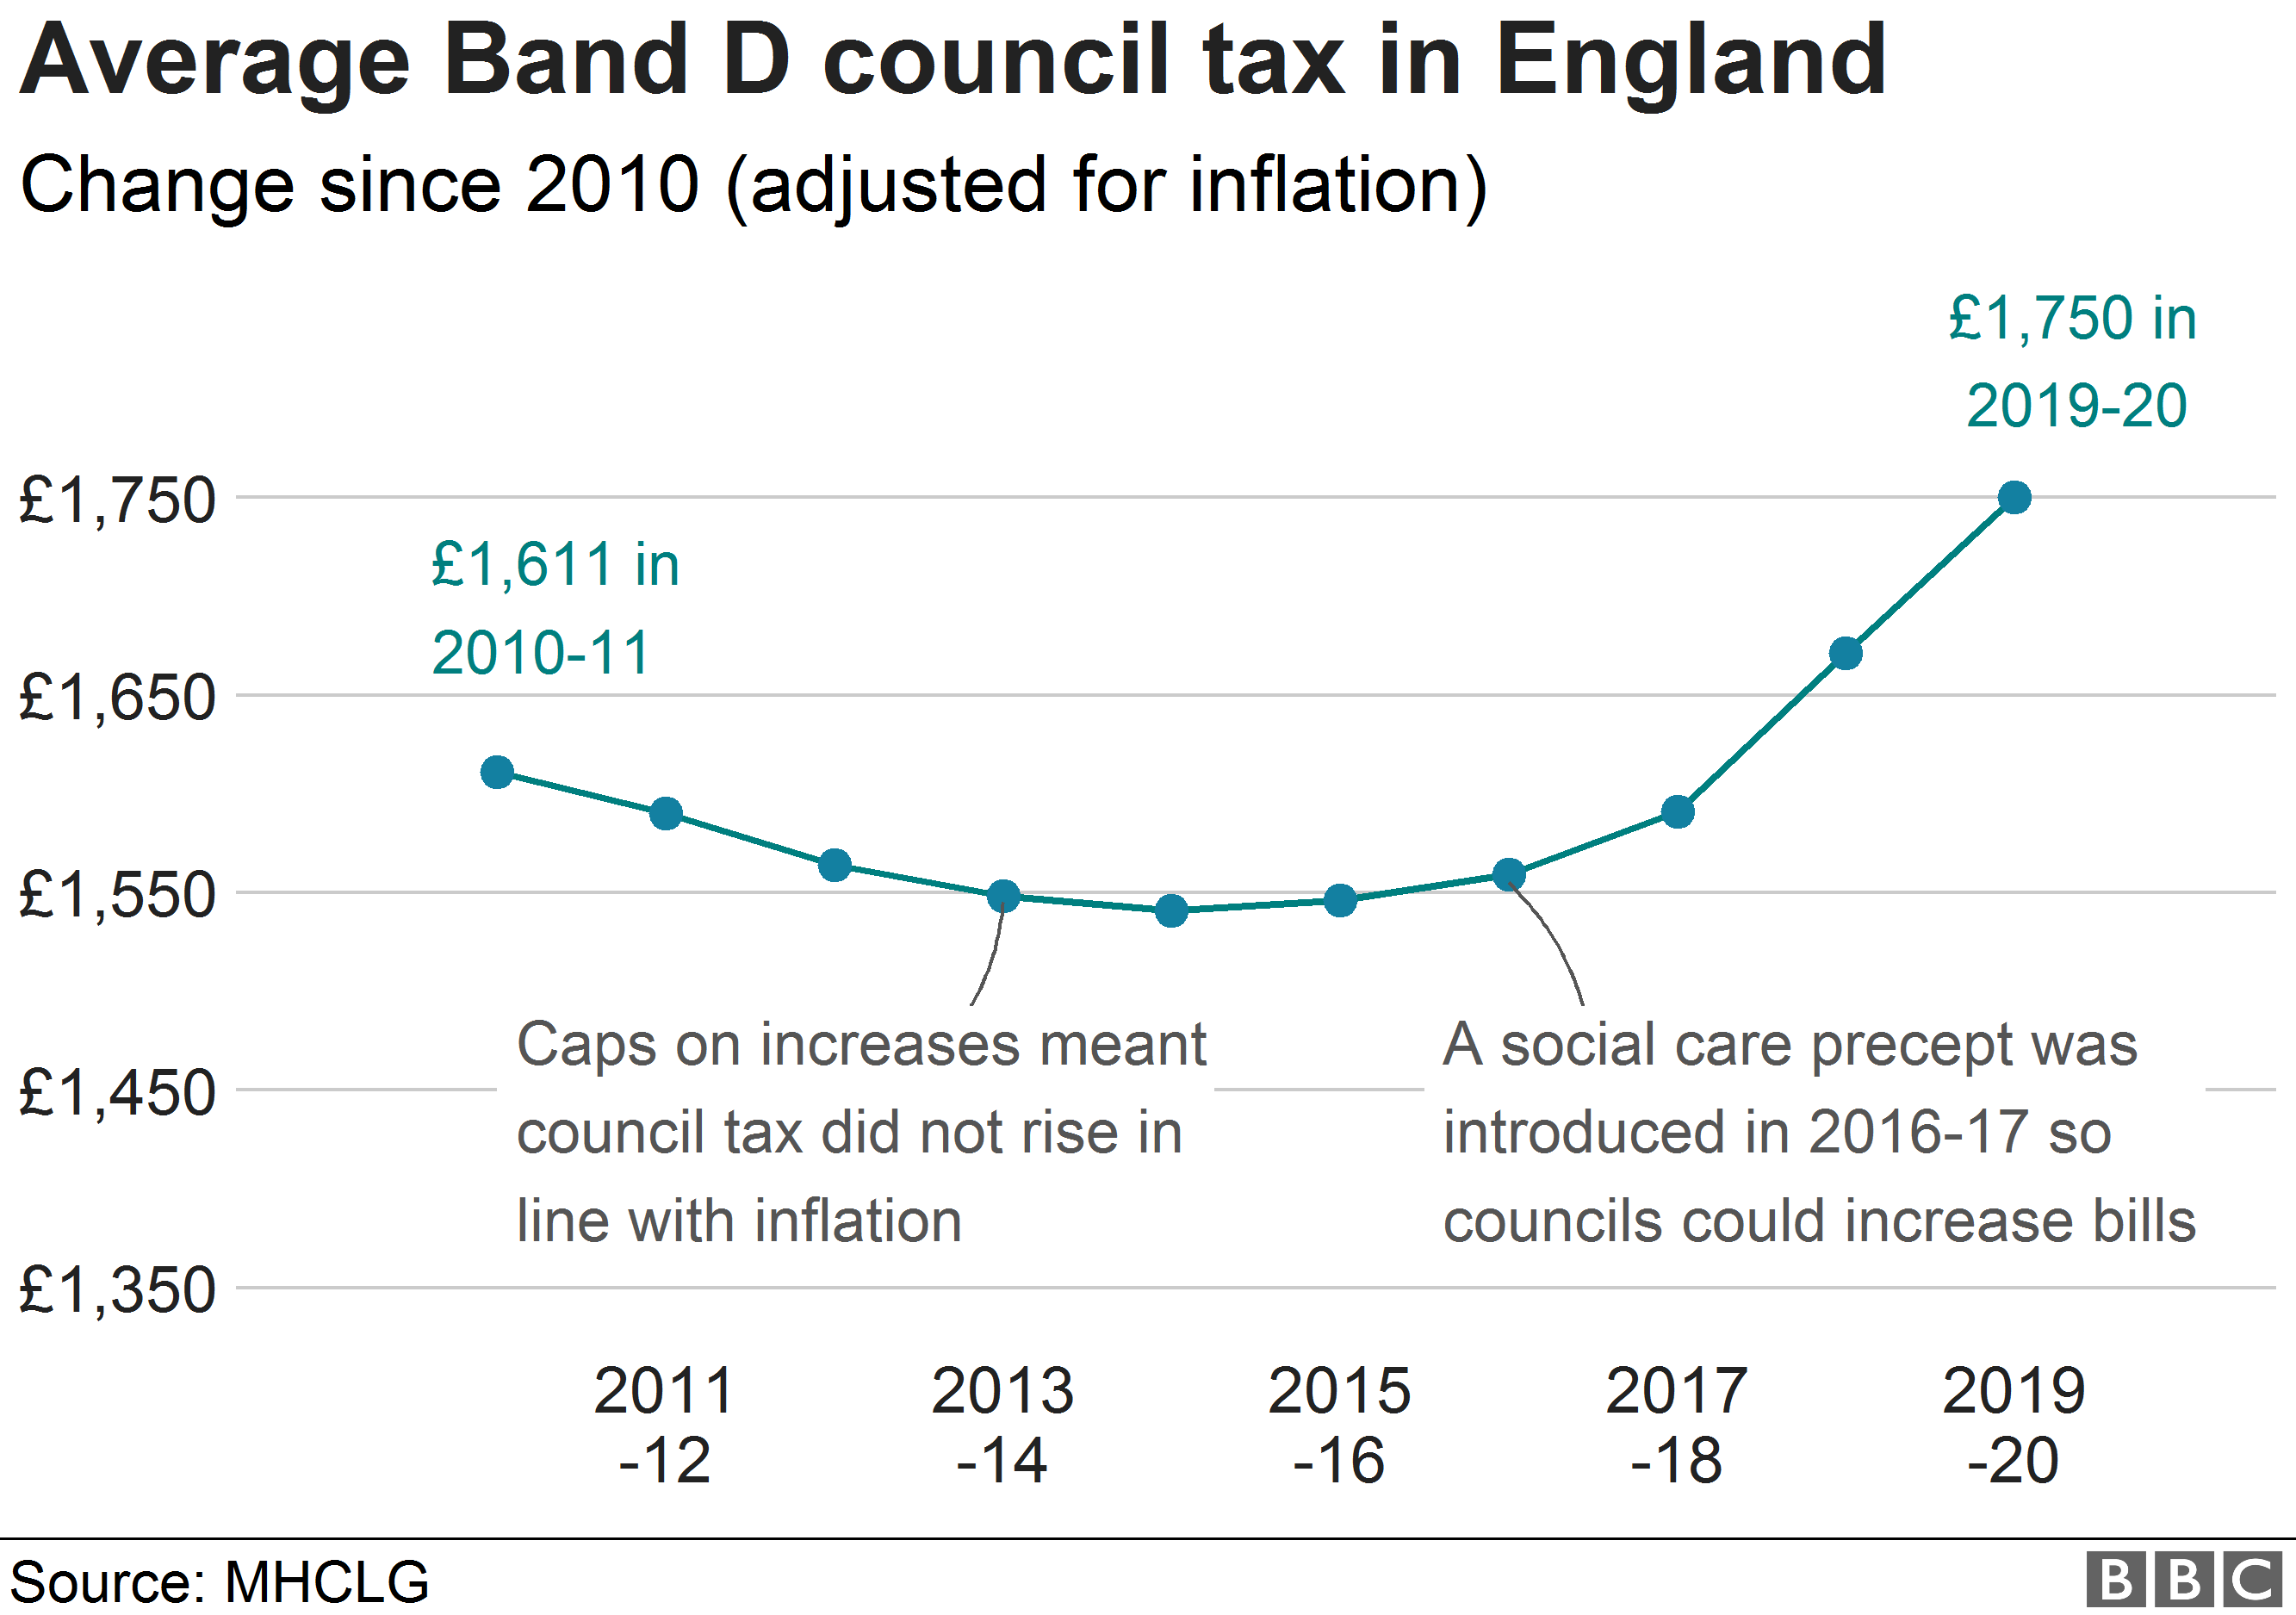 Council tax change over time for average Band D